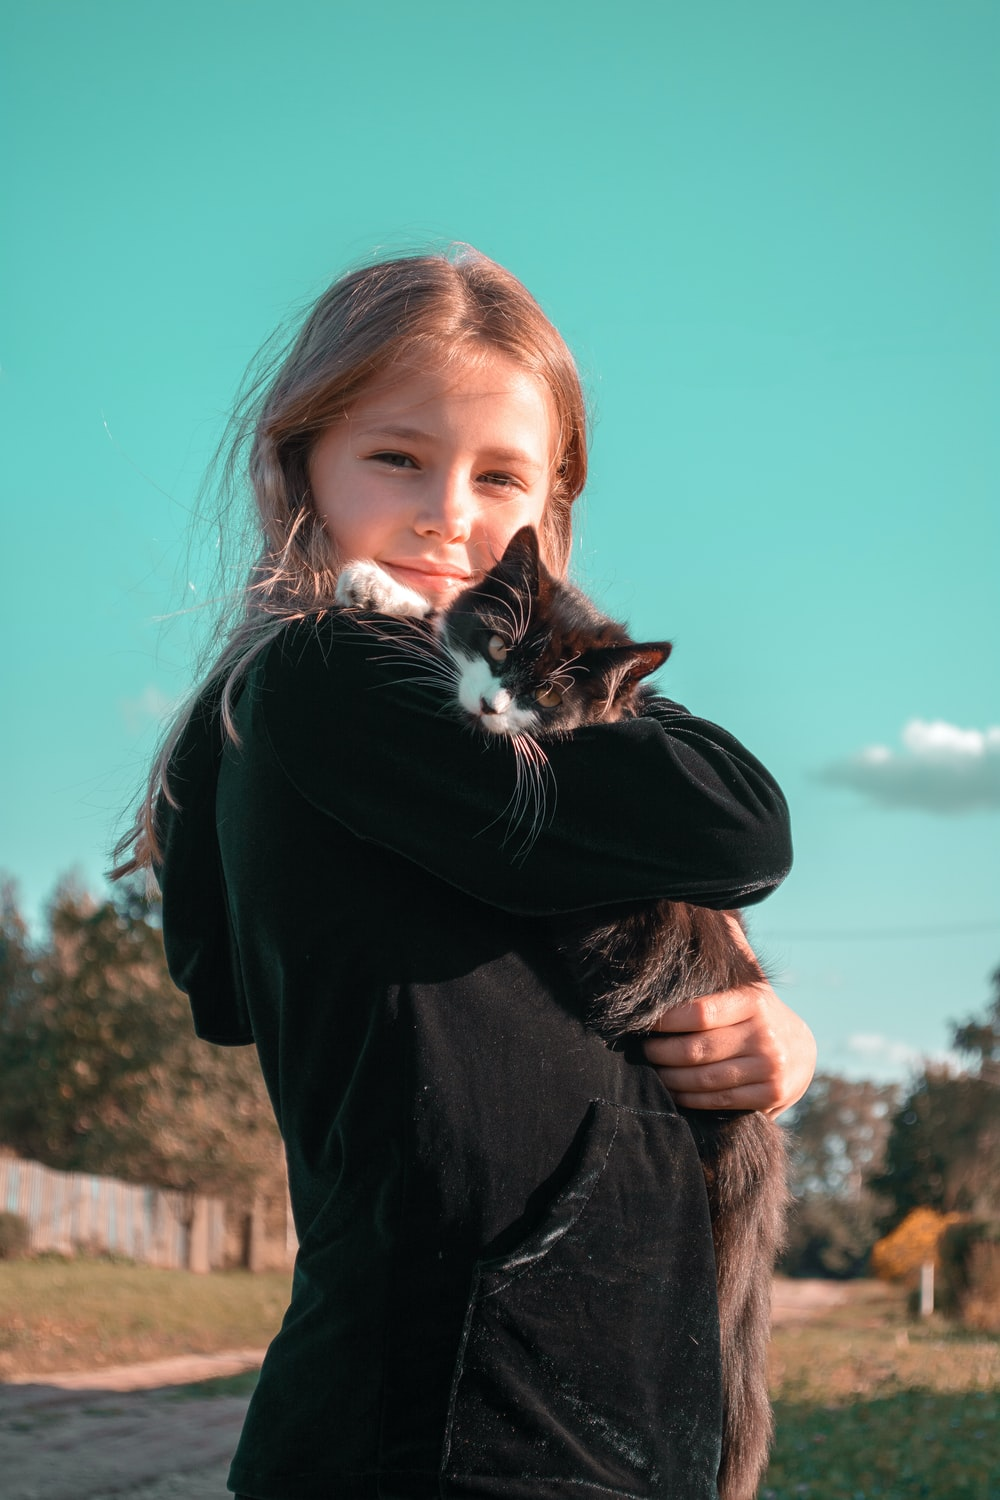 woman in black long sleeve shirt holding white and black cat